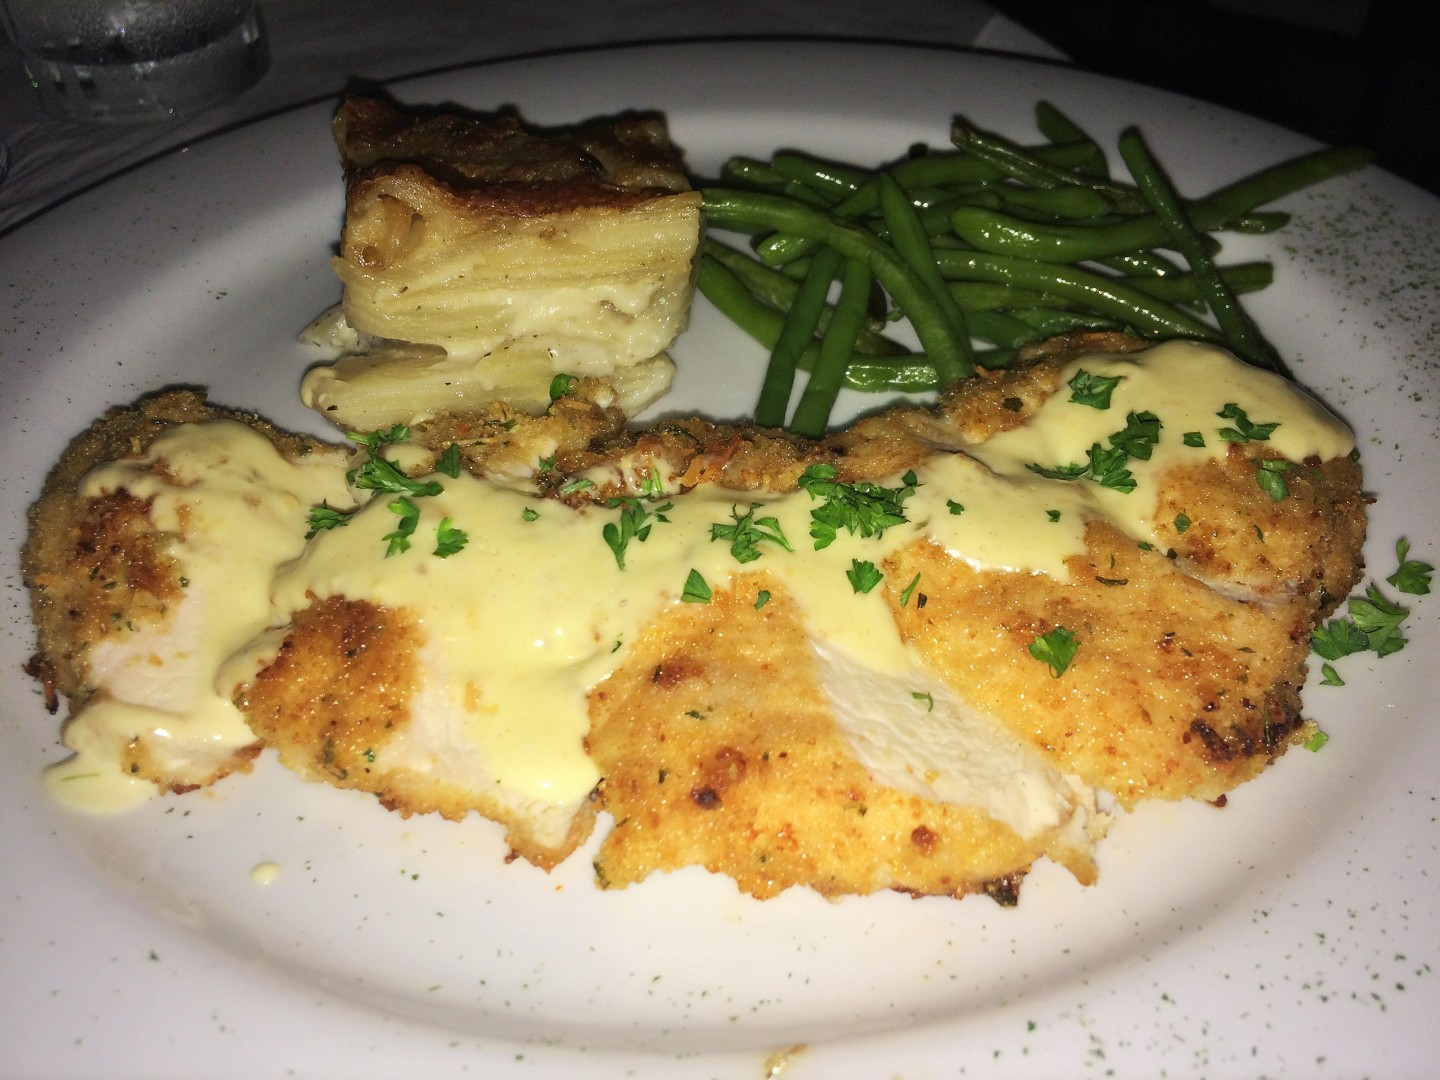 Parmesan-crusted chicken Dijon is a star on the new seasonal menu at Paris Bistro